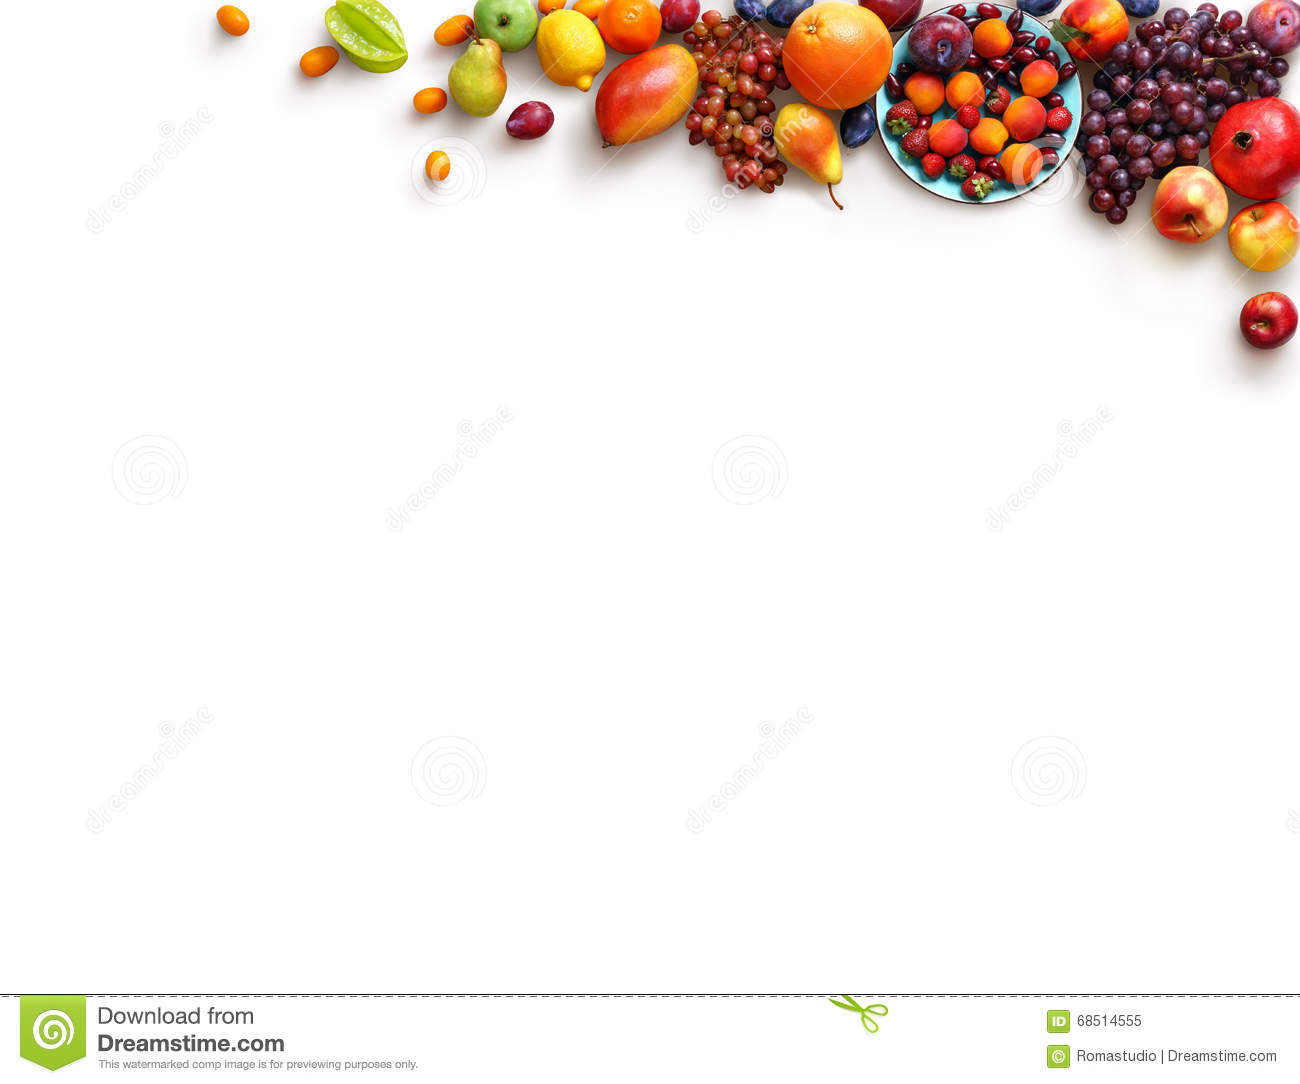 Healthy fruits background. Studio photo of different fruits.